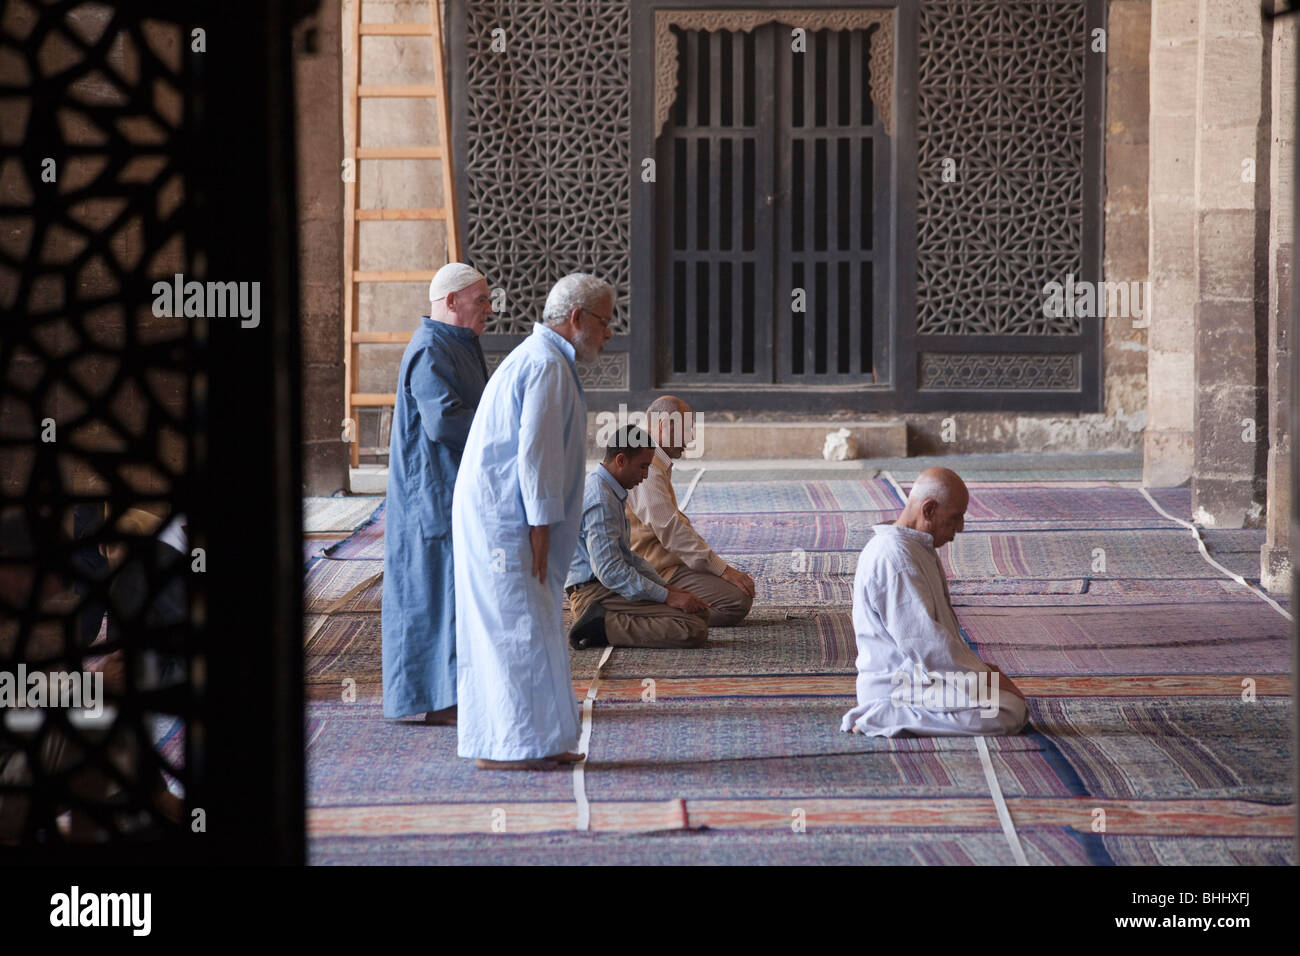 Muslims praying at the Farag ibn Barquq complex, northern cemetery, Cairo, Egypt - Stock Image